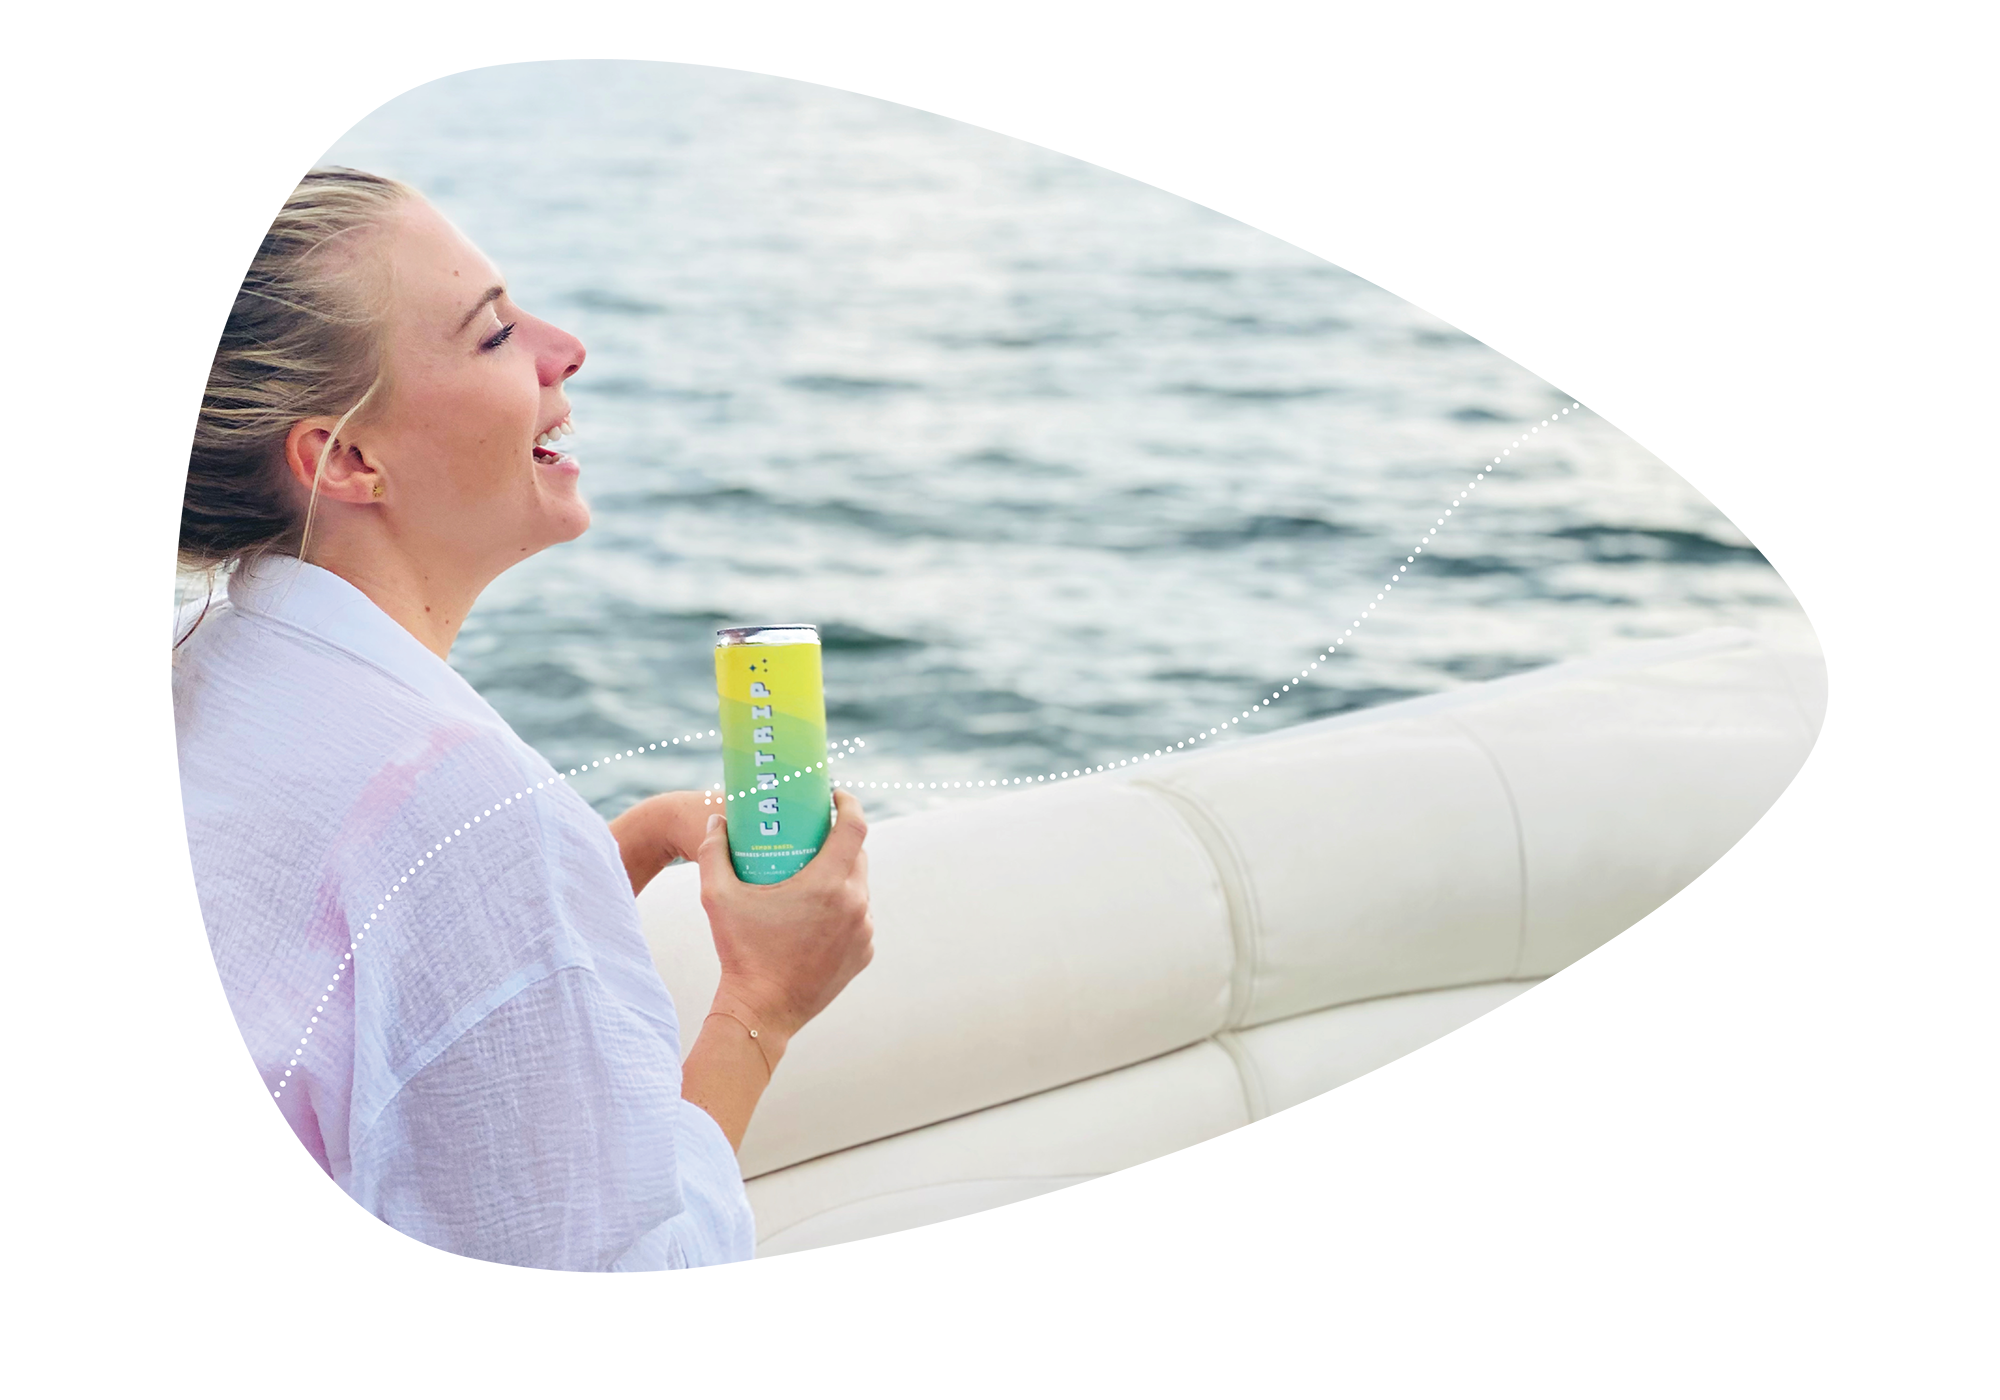 A woman smiles while she drinks a Cantrip Lemon Basil seltzer on a boat.